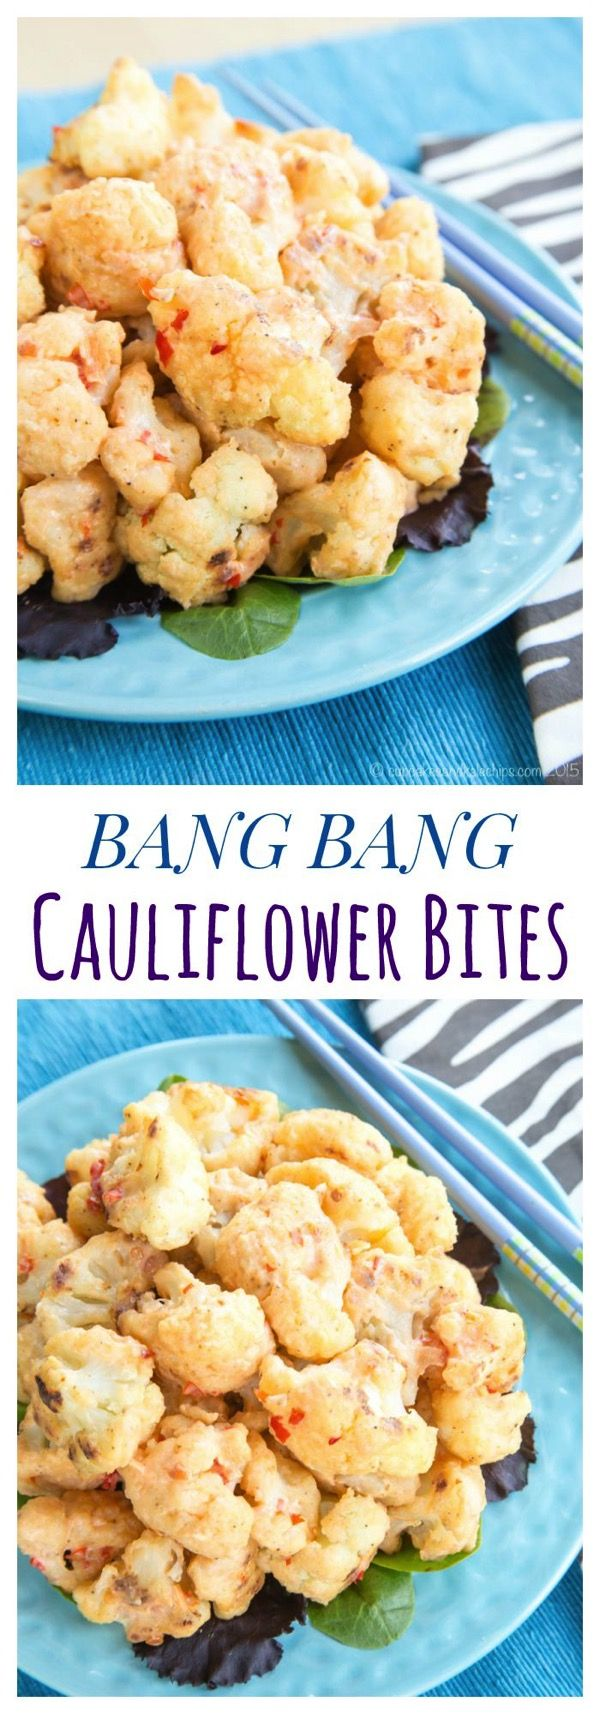 Bang Bang Cauliflower Bites - a veggie version of a restaurant copycat recipe, these sweet and spicy Asian-inspired bites are an addictive appetizer or vegetable side dish. | cupcakesandkalechips.com | gluten free, vegetarian recipe